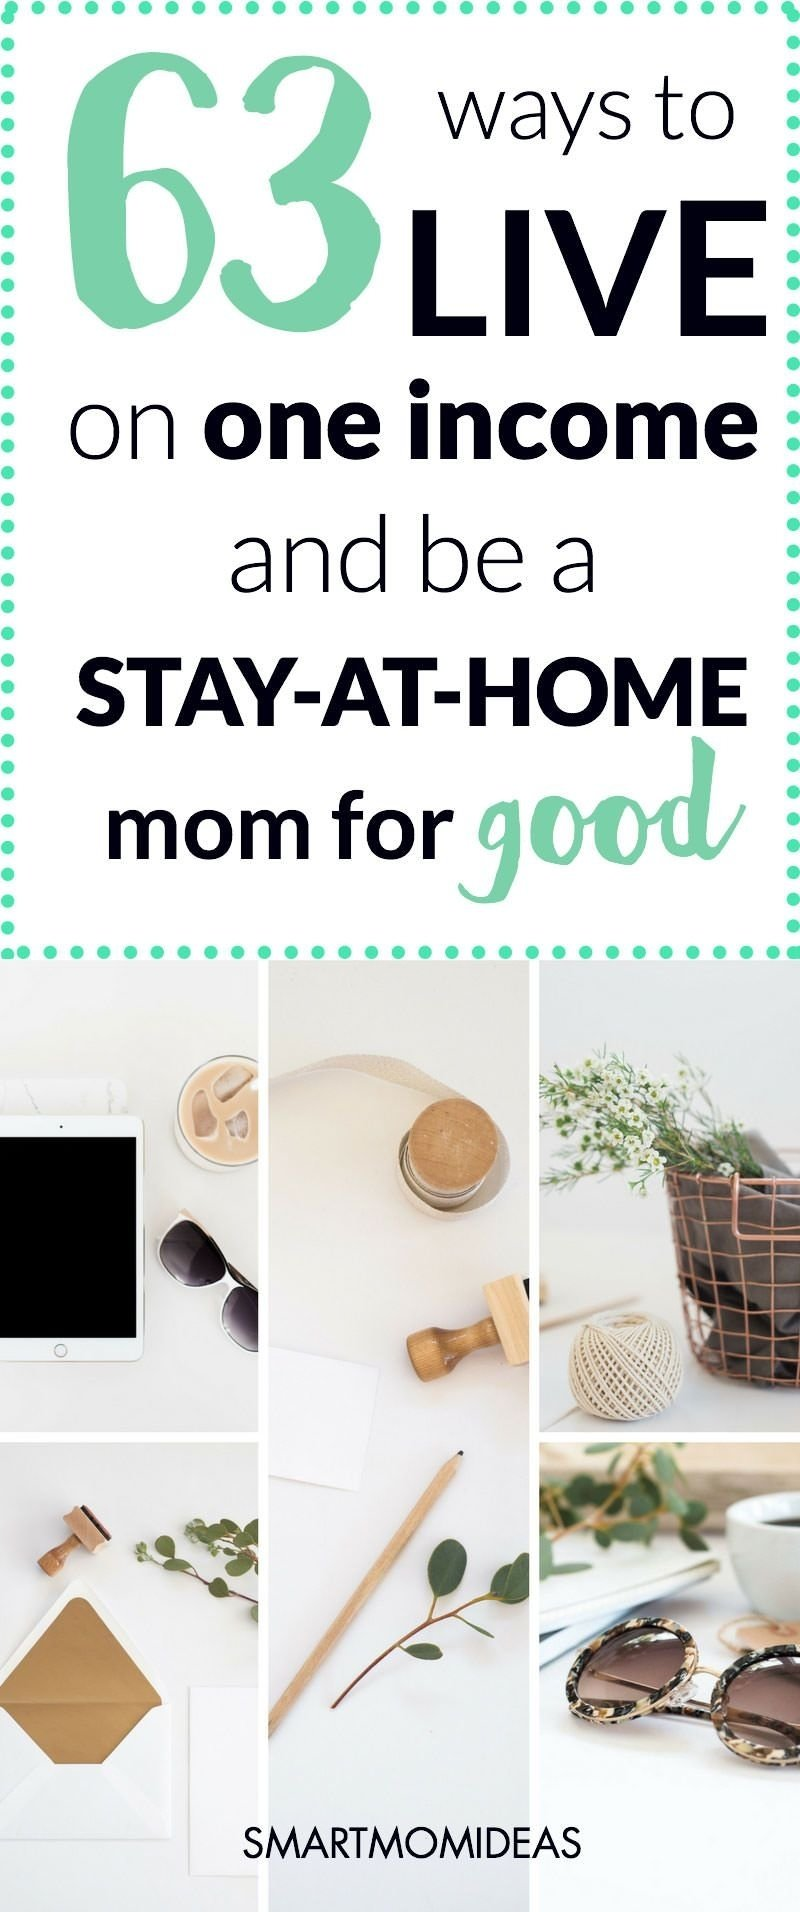 10 Gorgeous Money Making Ideas For Stay At Home Moms local work from home jobs personal finance meal ideas and frugal 2020